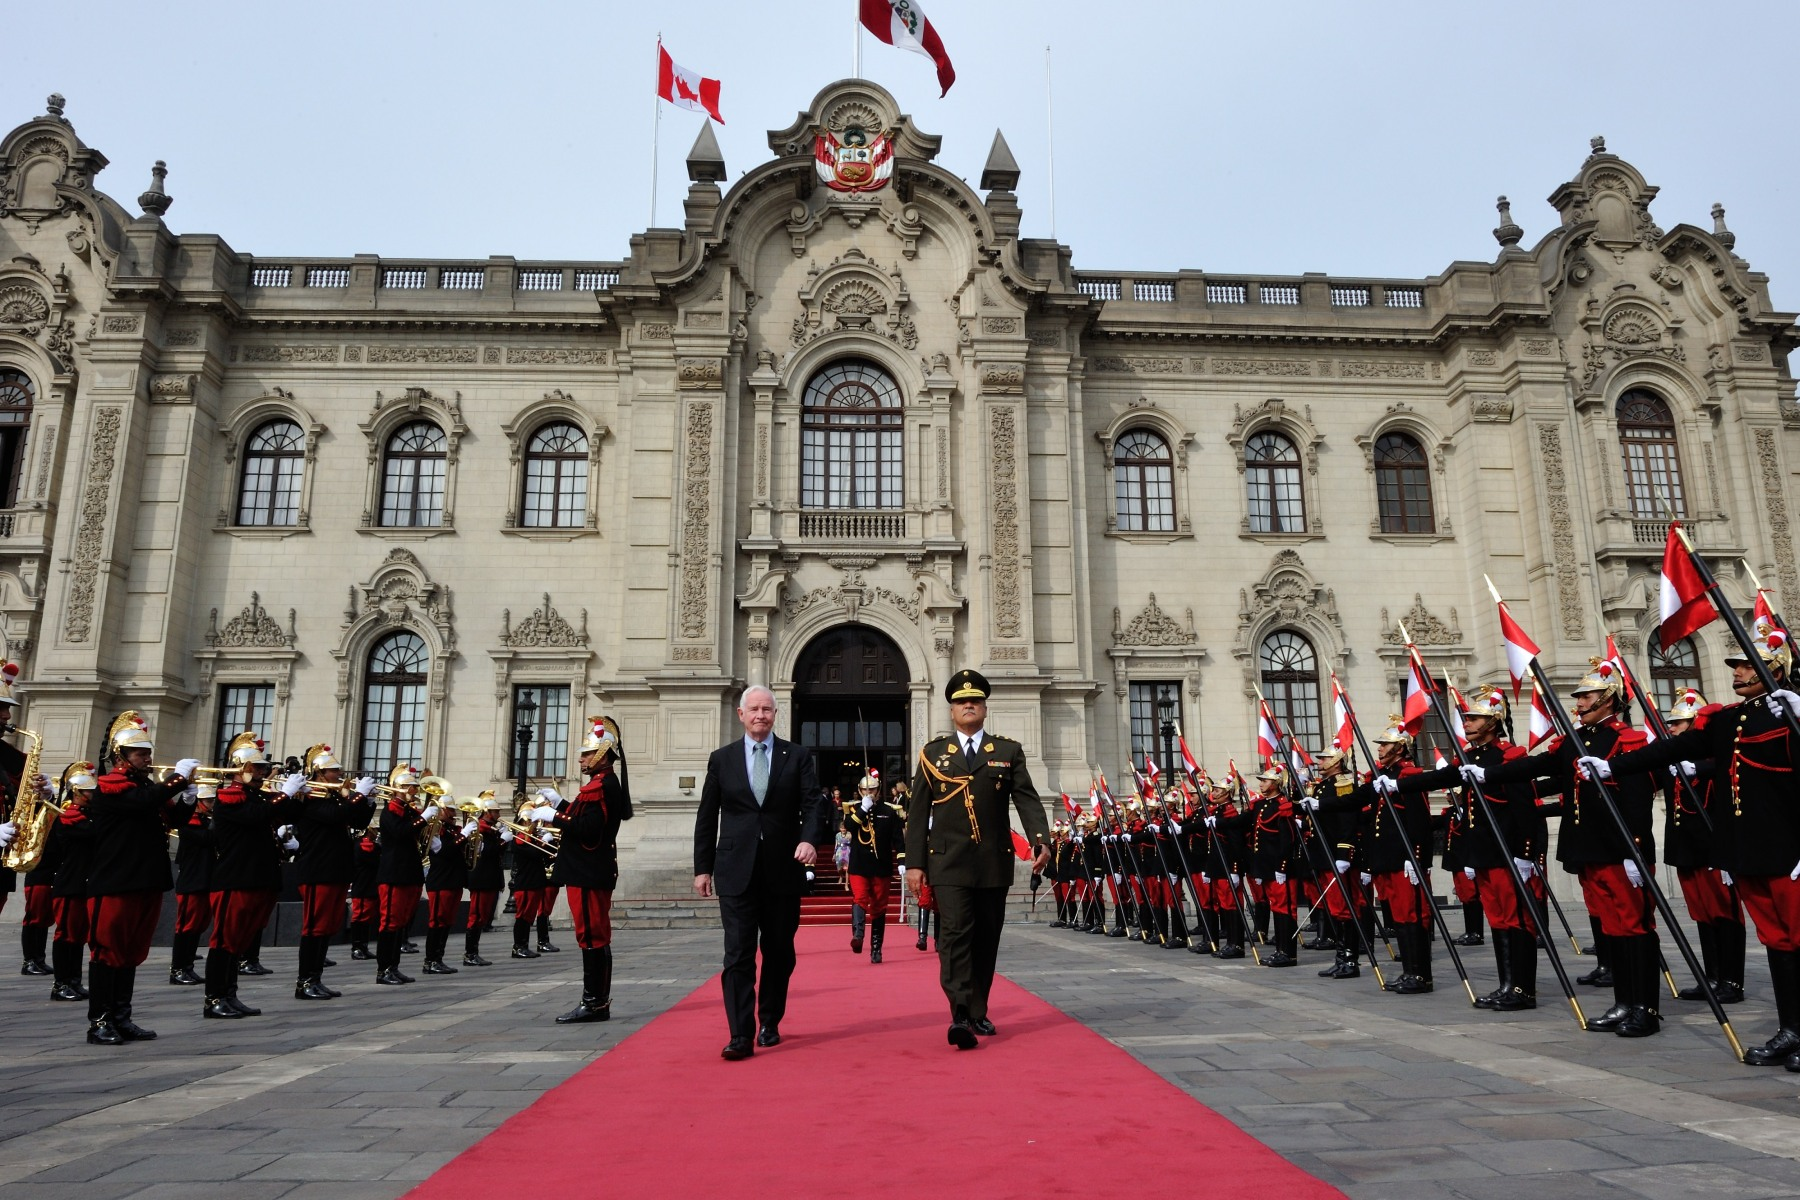 Later that morning, Their Excellencies were officially welcomed by His Excellency Ollanta Humala, President of the Republic of Peru, and Her Excellency Nadine Heredia, First Lady of Peru.